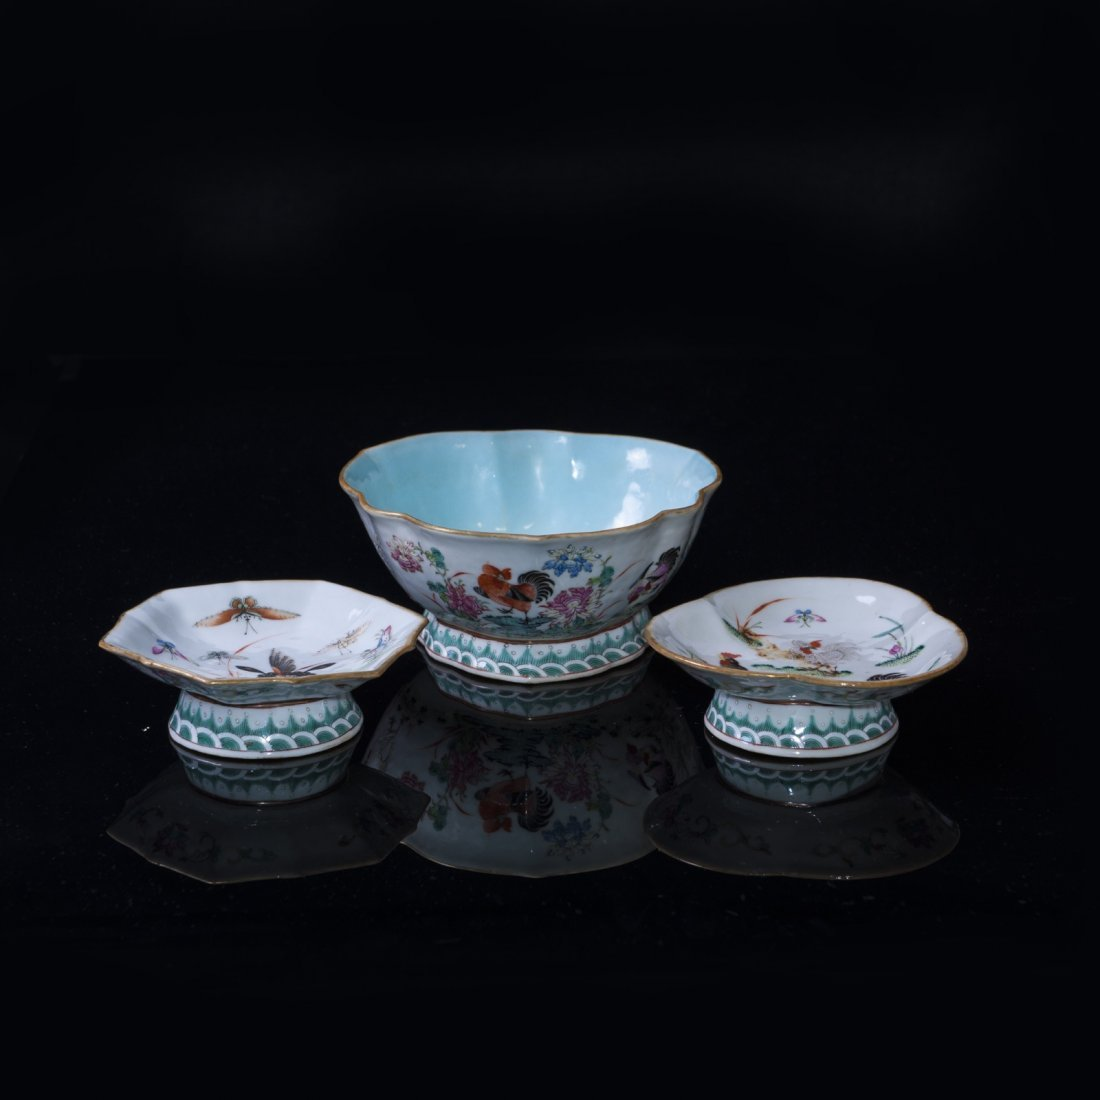 Late Qing / Republic - A set of famille-rose porcelain